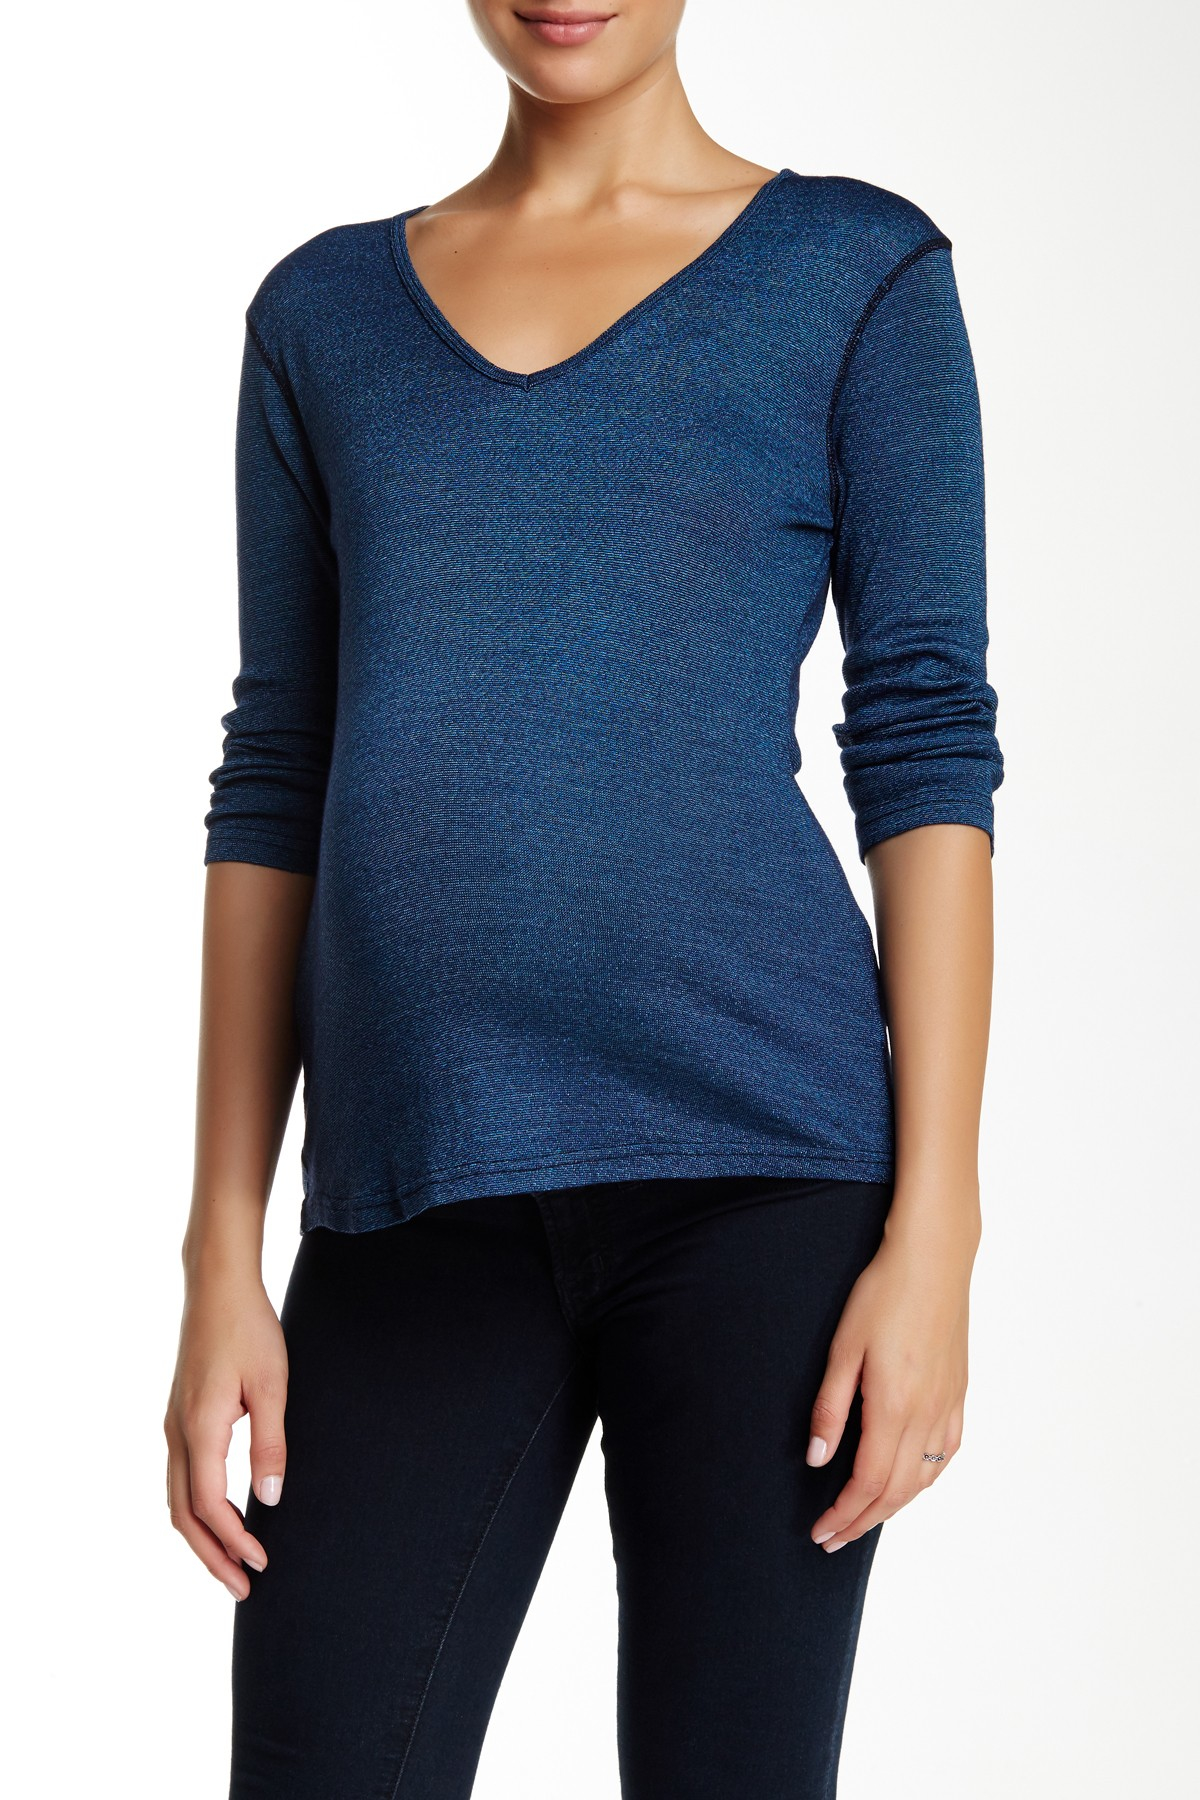 Michael stars deep v neck tee maternity in blue lyst for Michael stars tee shirts